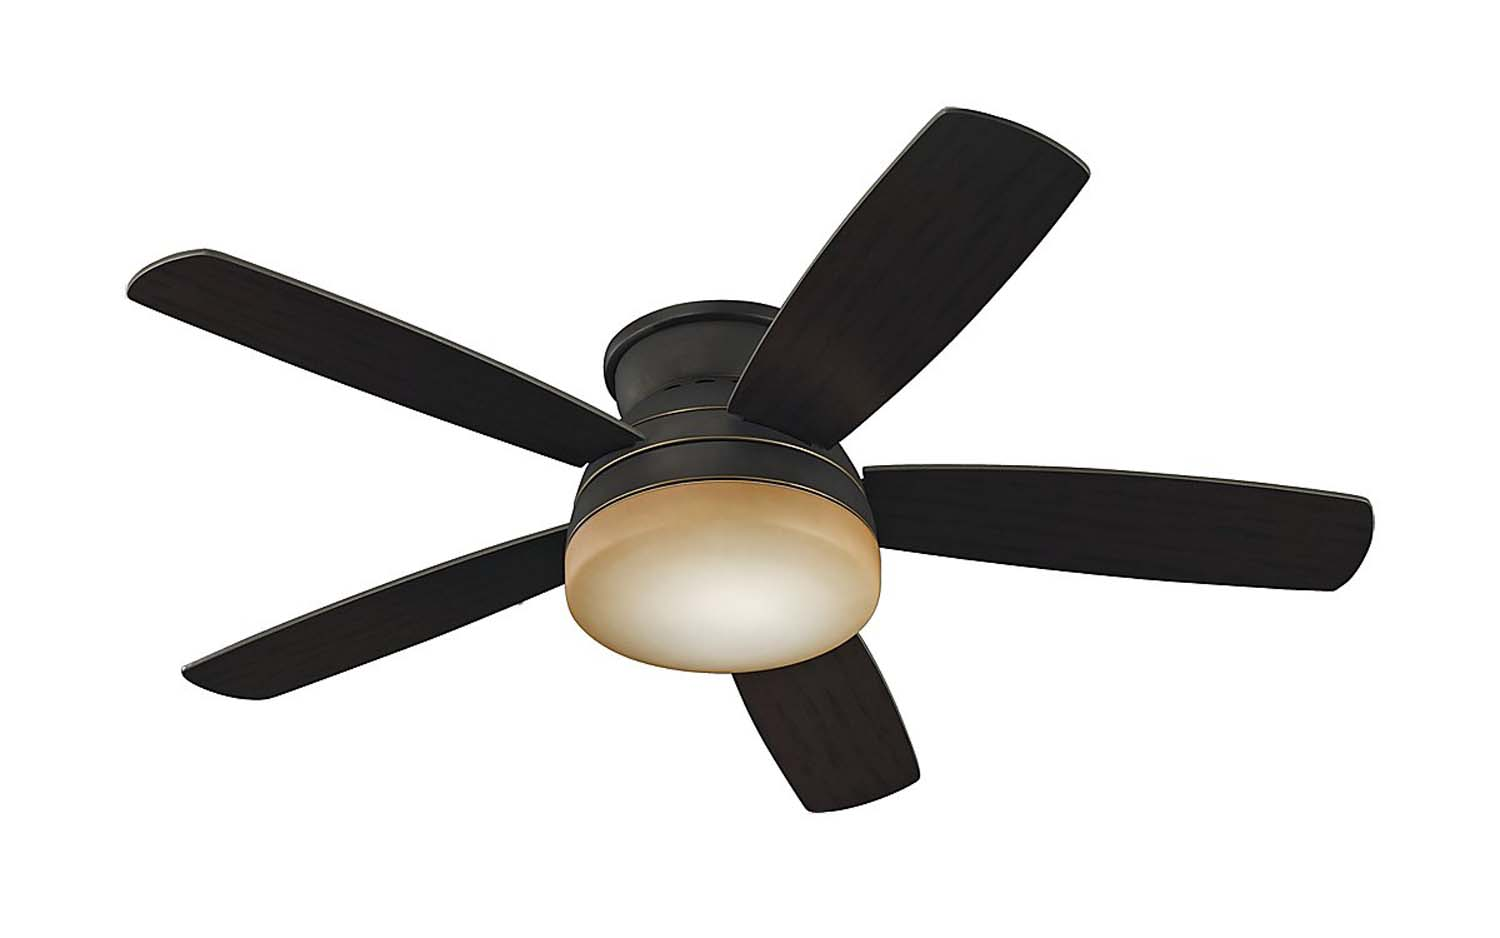 52 inchCeiling Fan from the Traverse collection by Monte Carlo 5TV52RBD